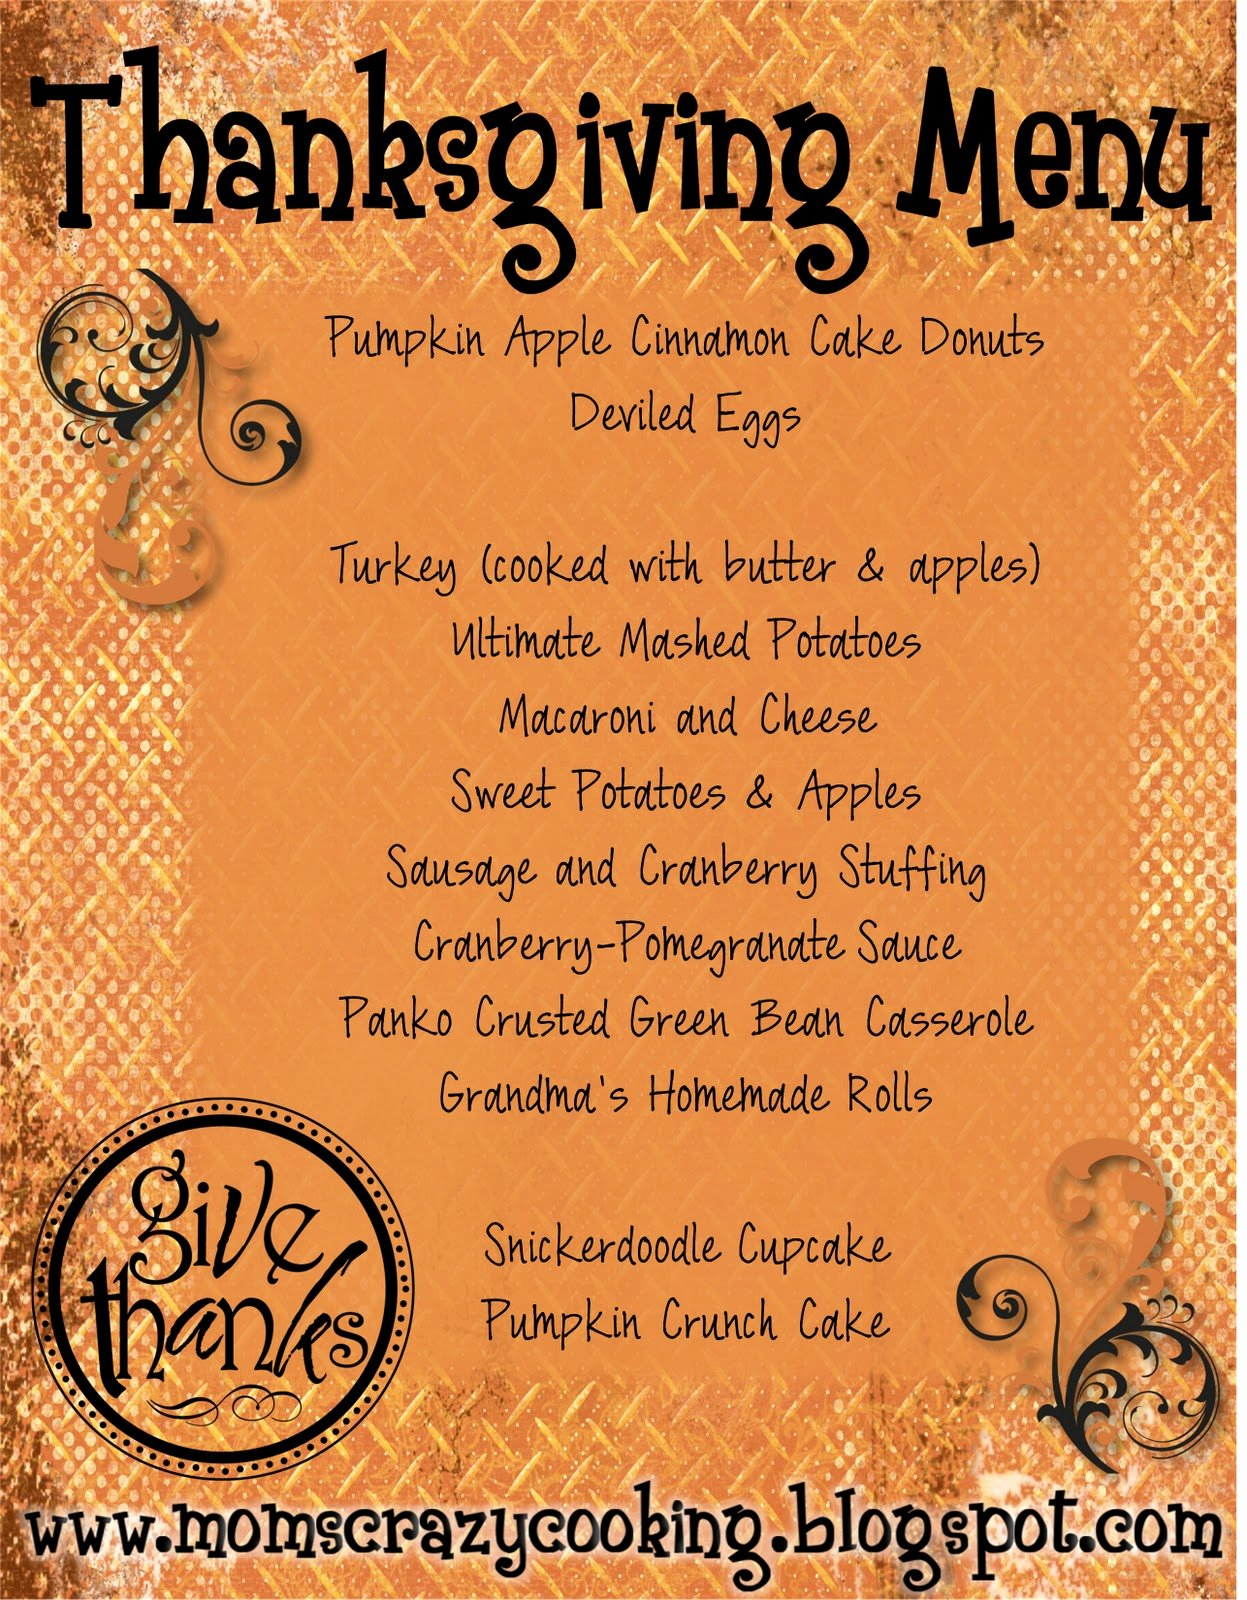 Thanksgiving Dinner Menu Template Inspirational Moms Crazy Cooking Thanksgiving Turkey Treats & My